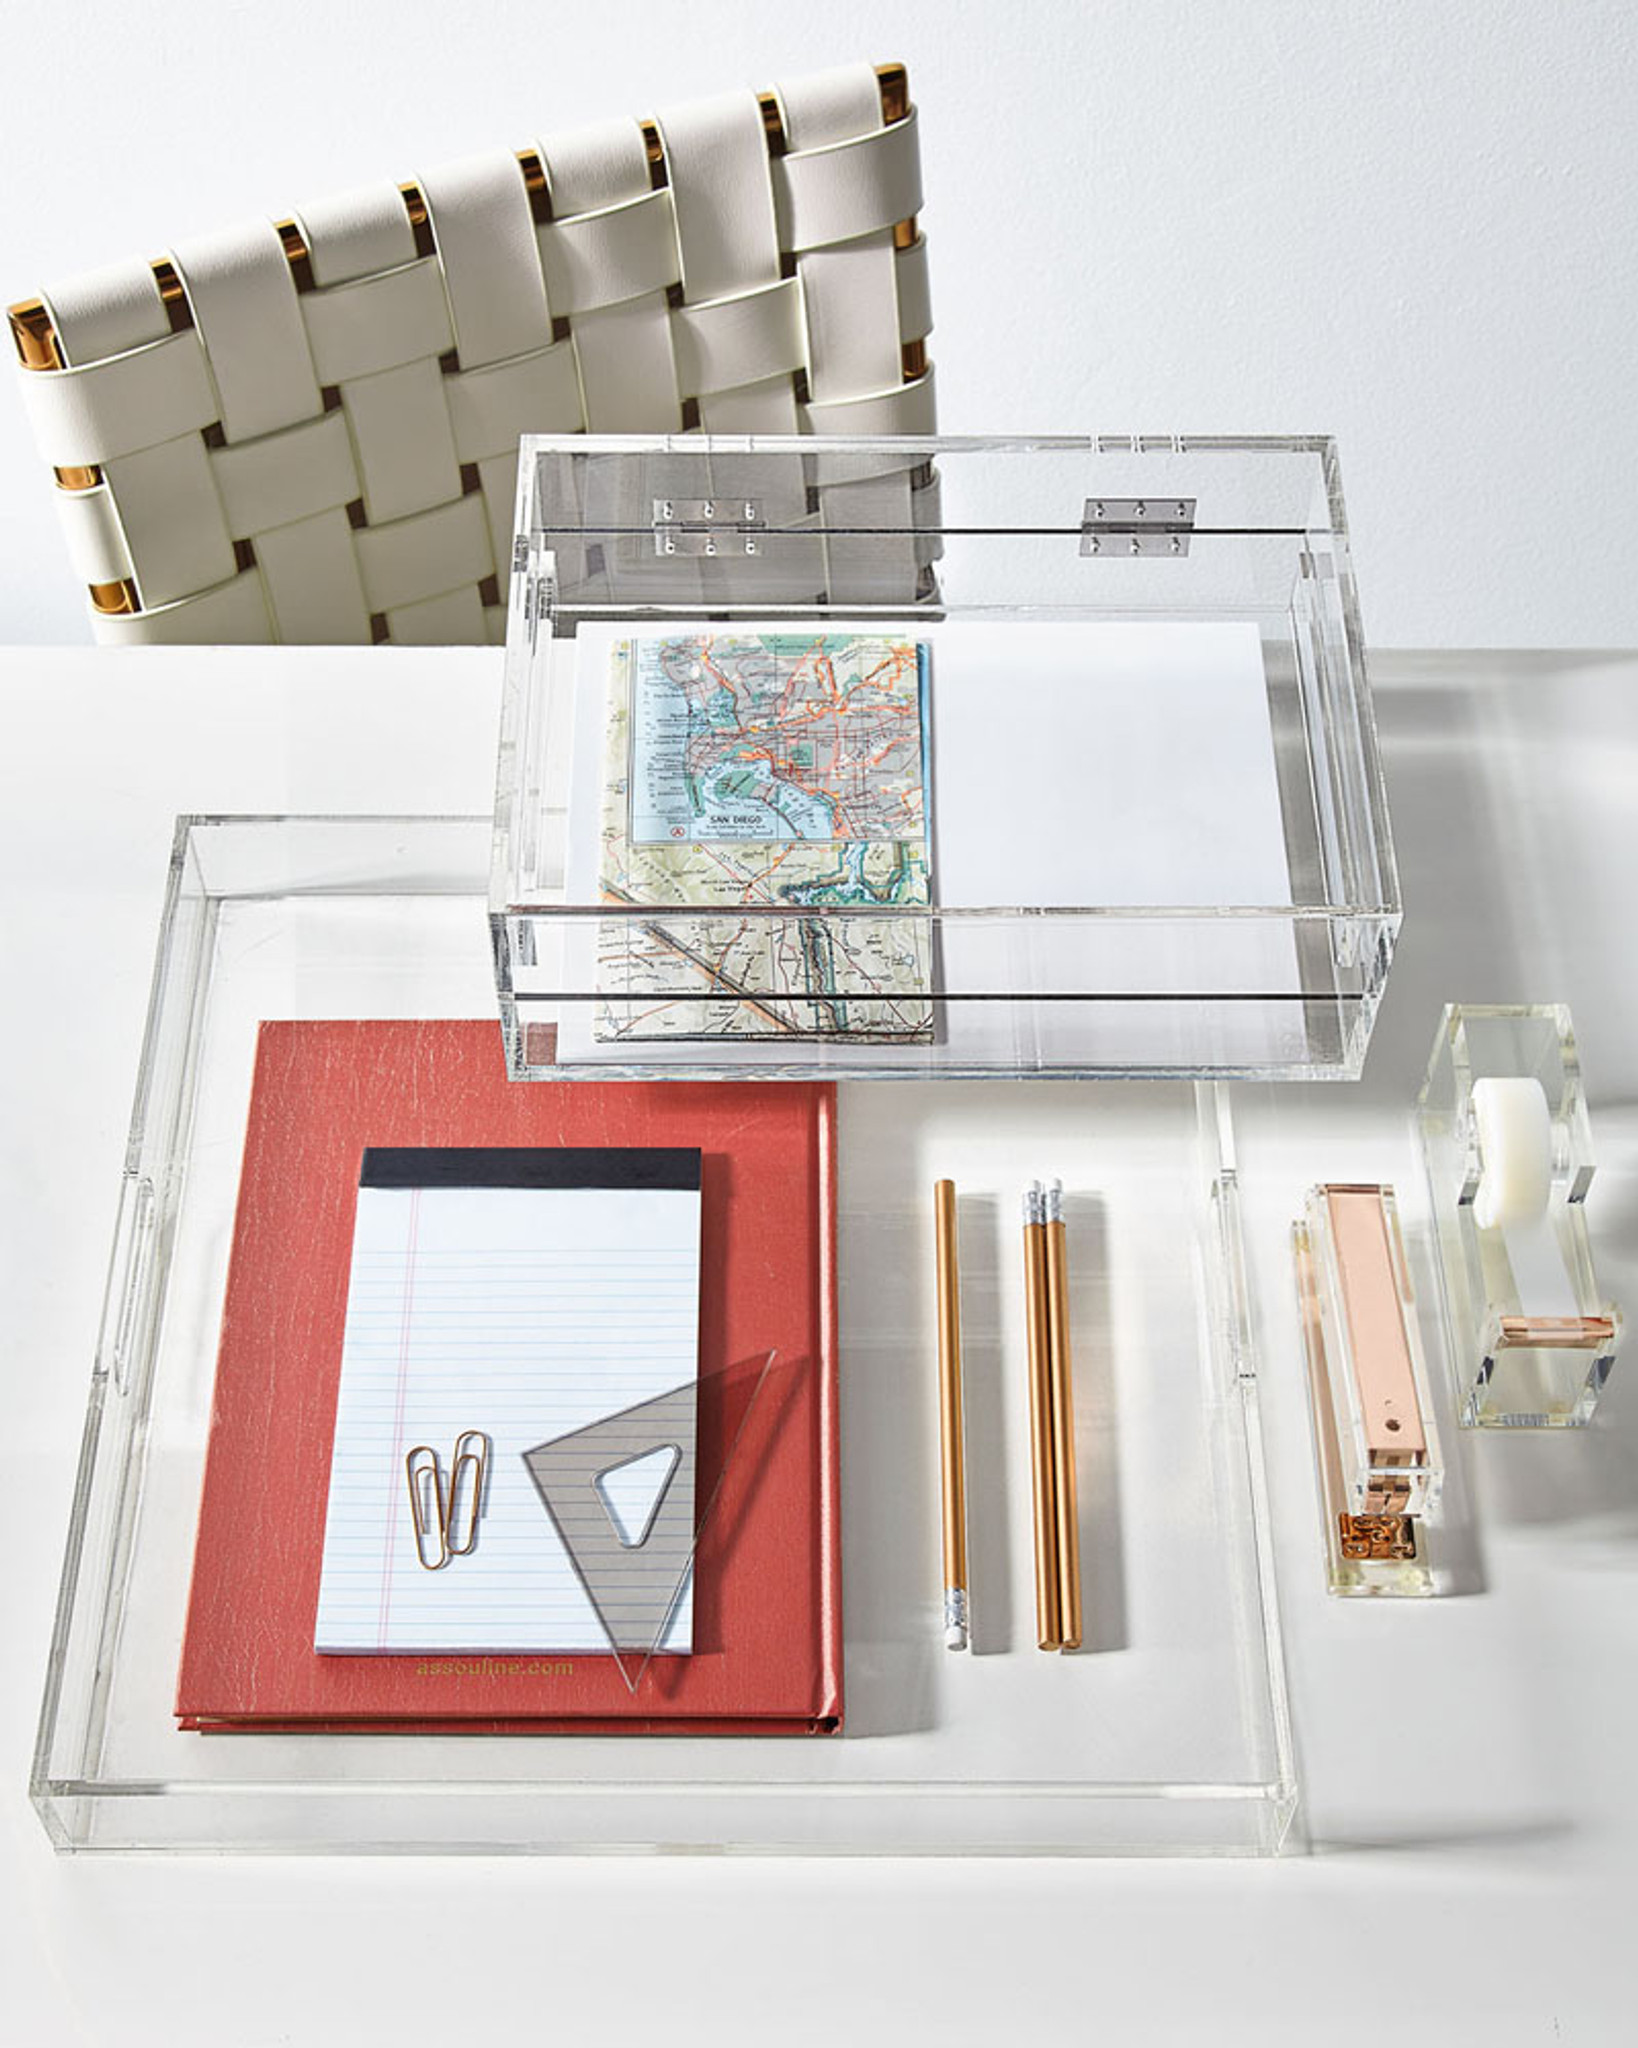 Russell and hazel square acrylic lucite tray handles desk office organizer